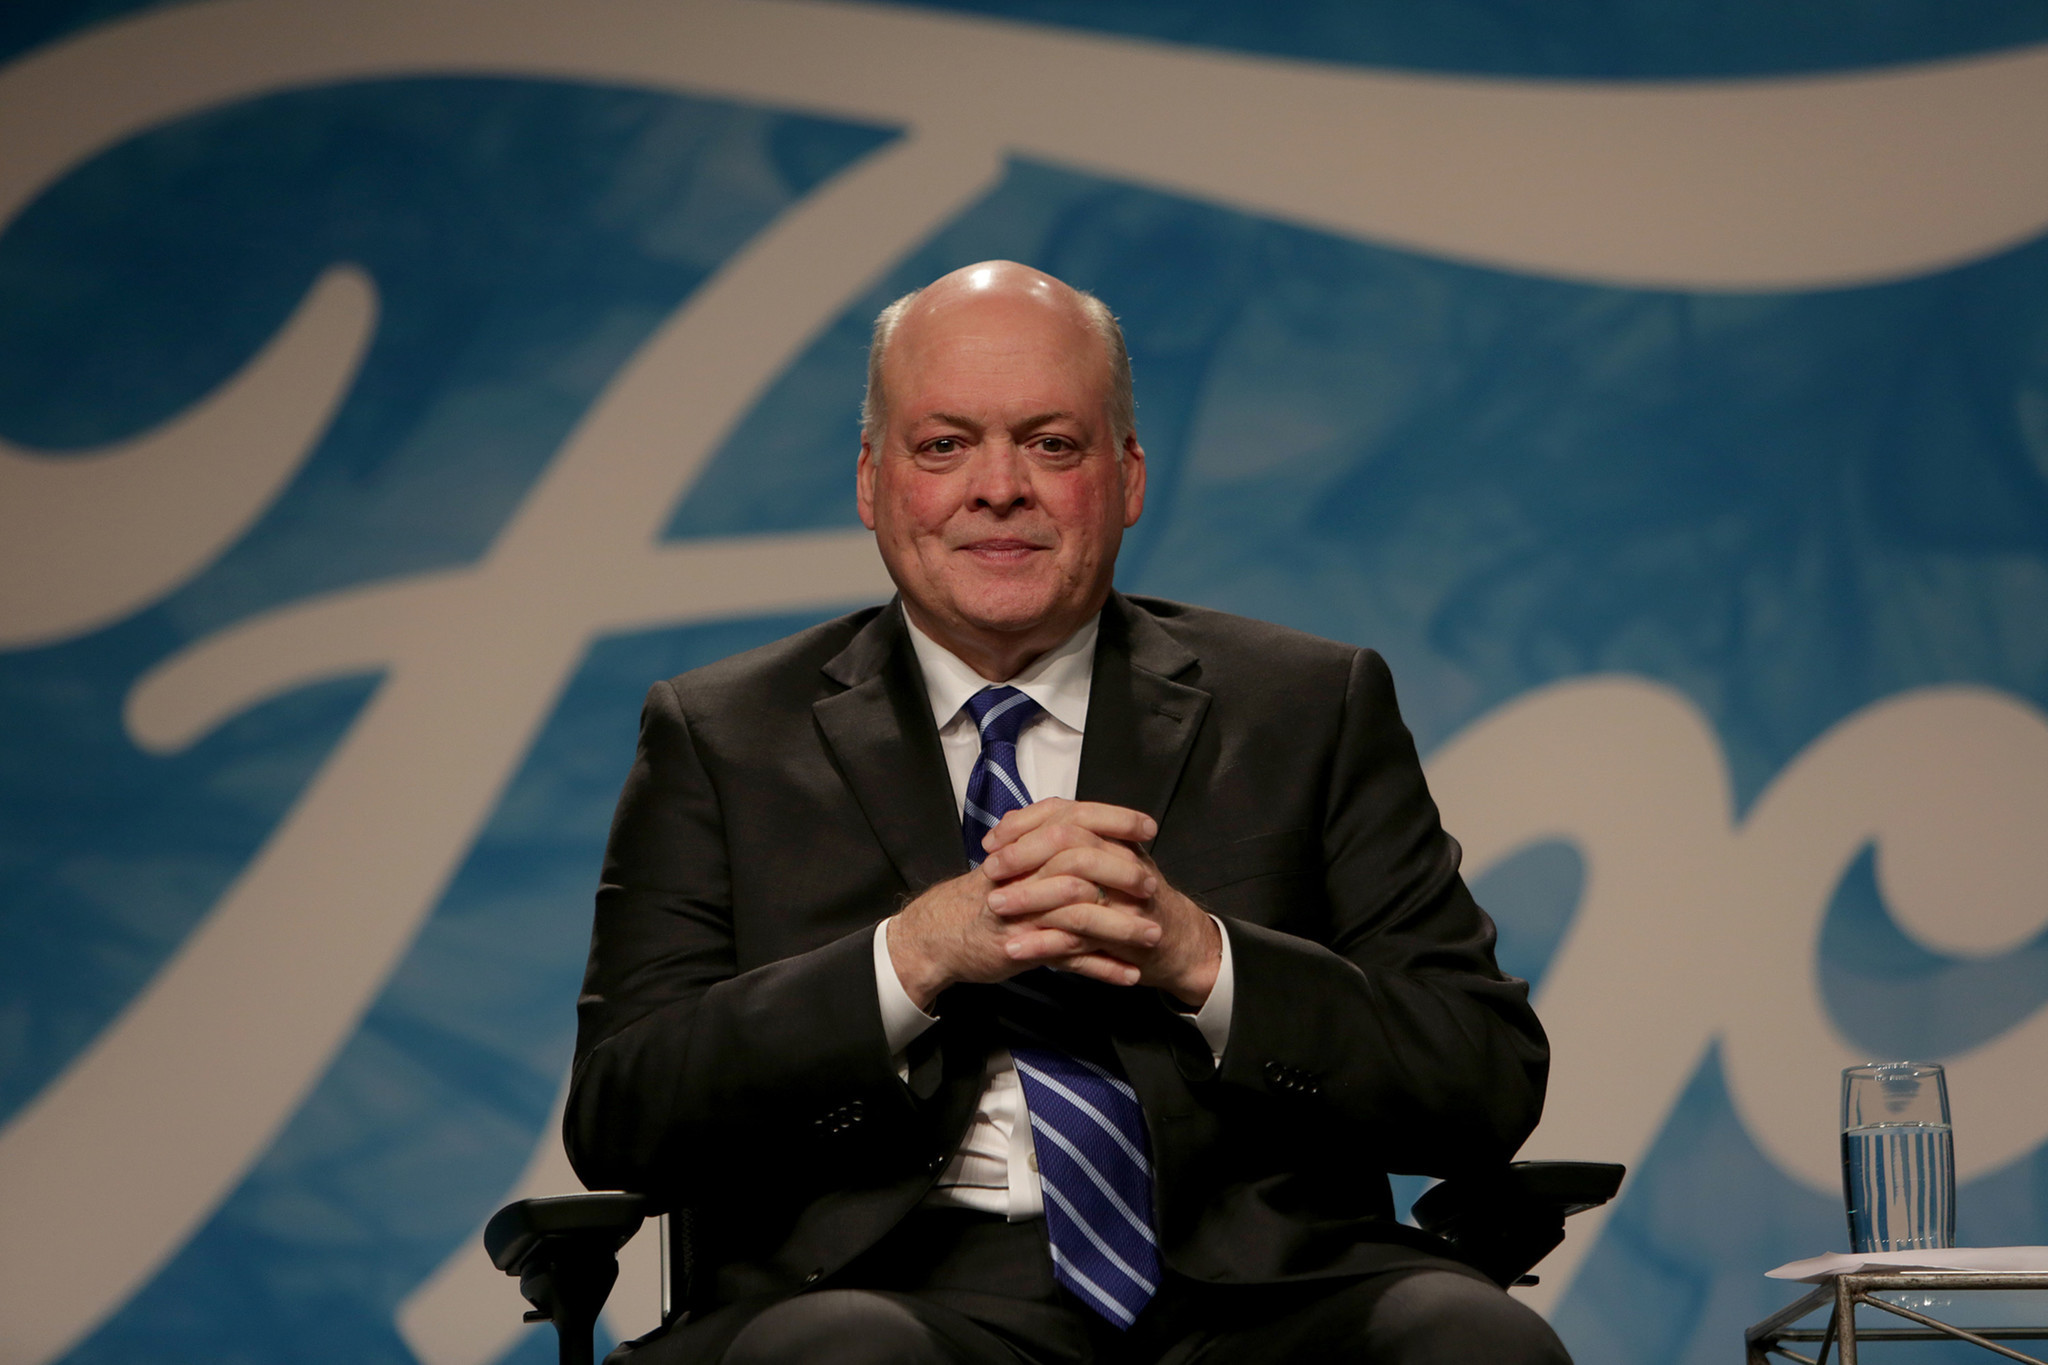 Fields out at ford new ceo hackett known for turnarounds chicago tribune